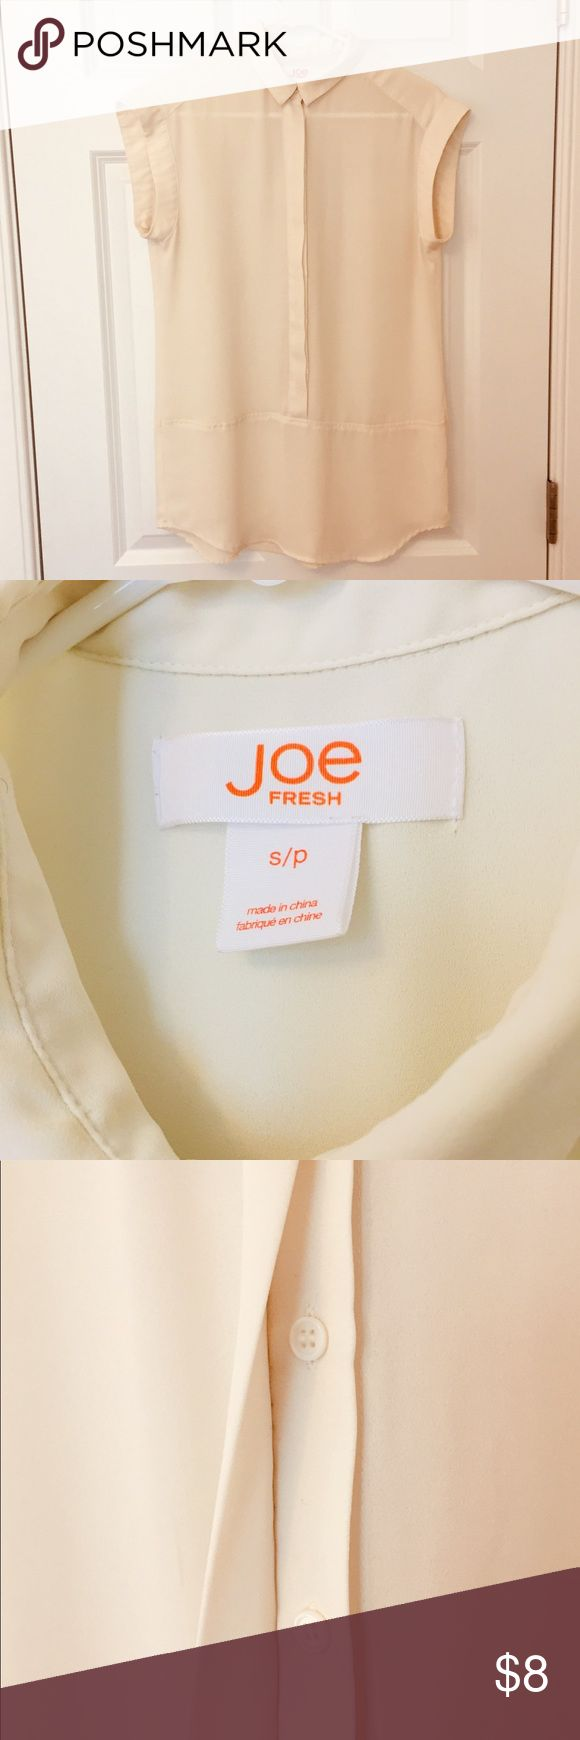 JOE FRESH BLOUSE Joe Fresh ivory sleeveless blouse with covered button front.  Great for layering under cardigans!  In very good condition. Joe Fresh Tops